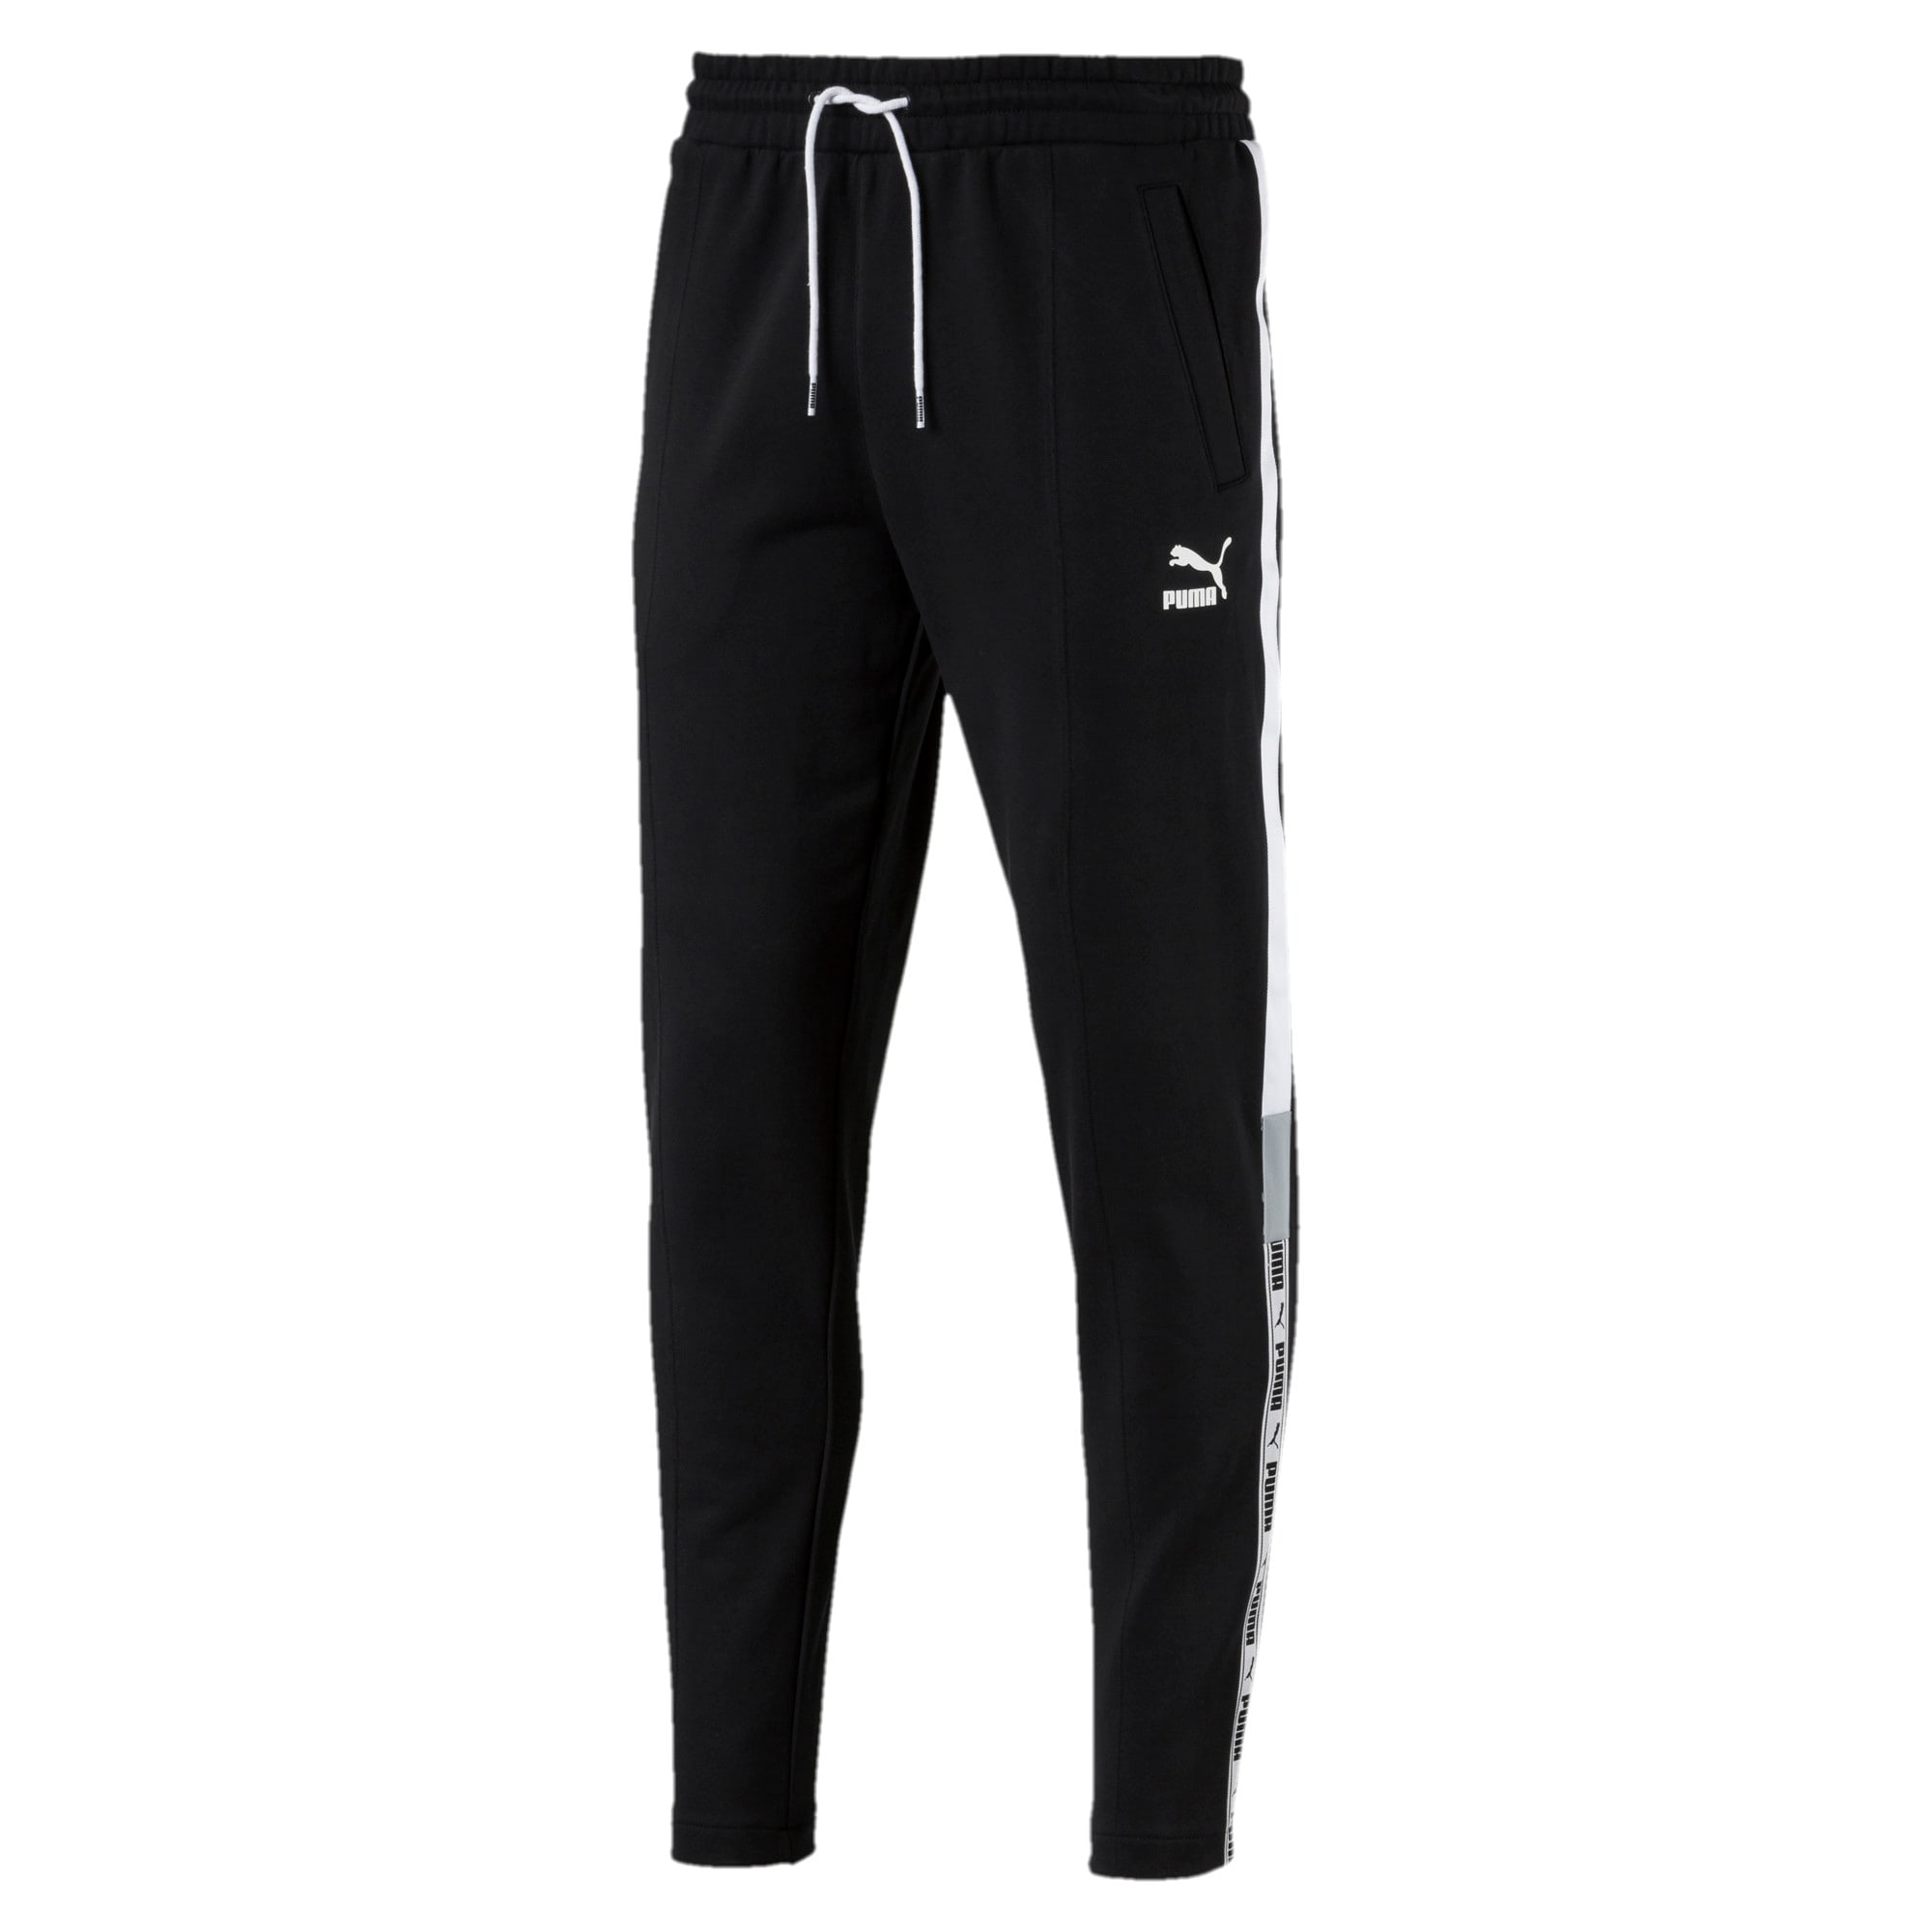 Thumbnail 1 of PUMA XTG Men's Sweatpants, Cotton Black-Puma white, medium